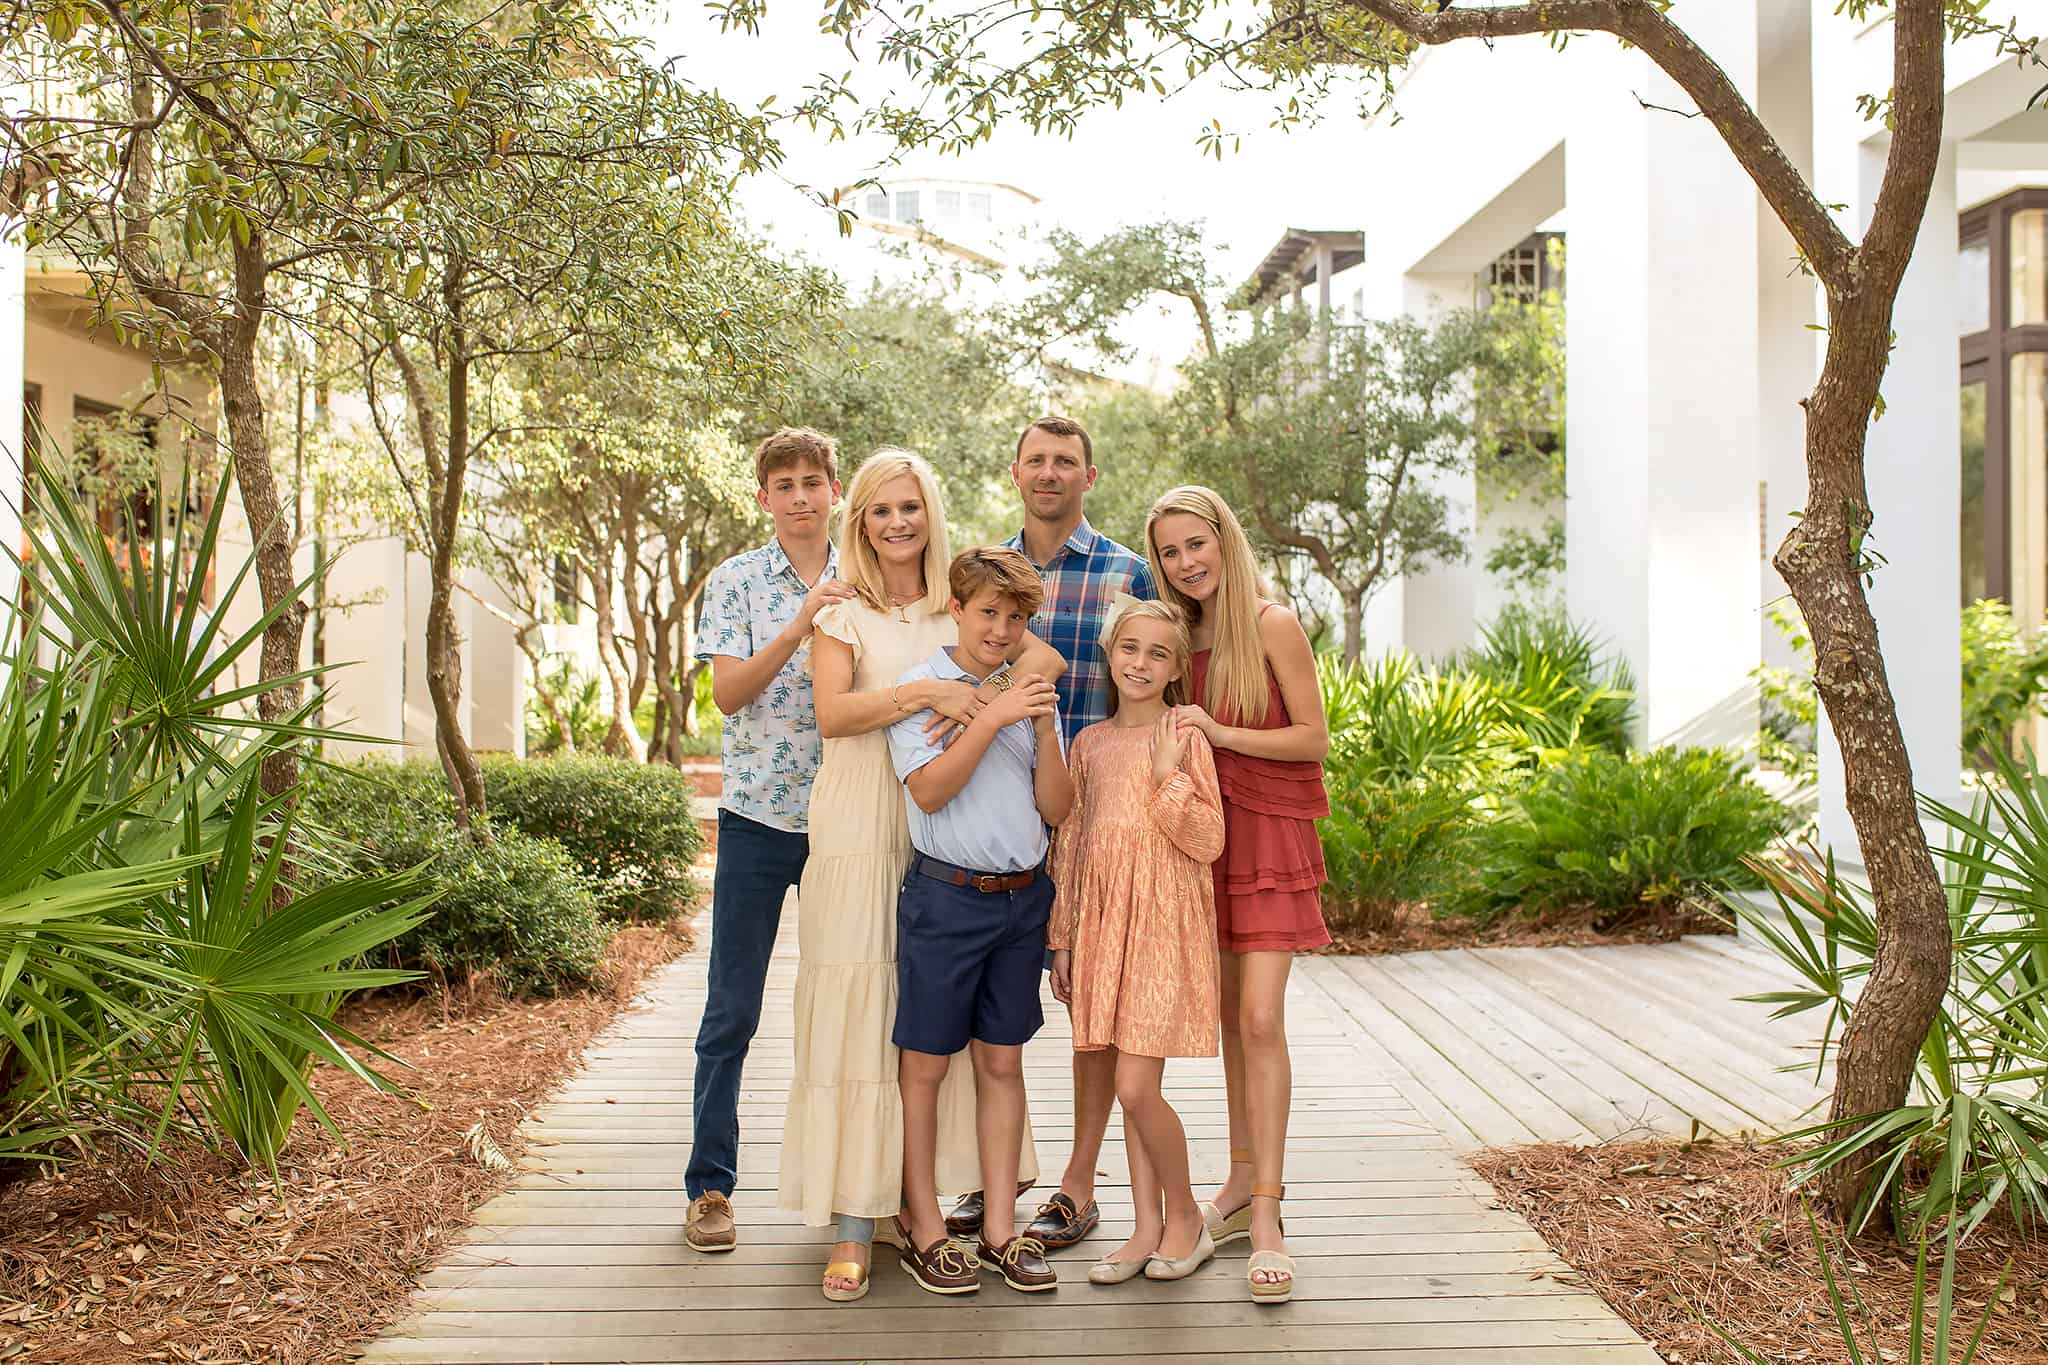 Rosemary Beach Photo Session